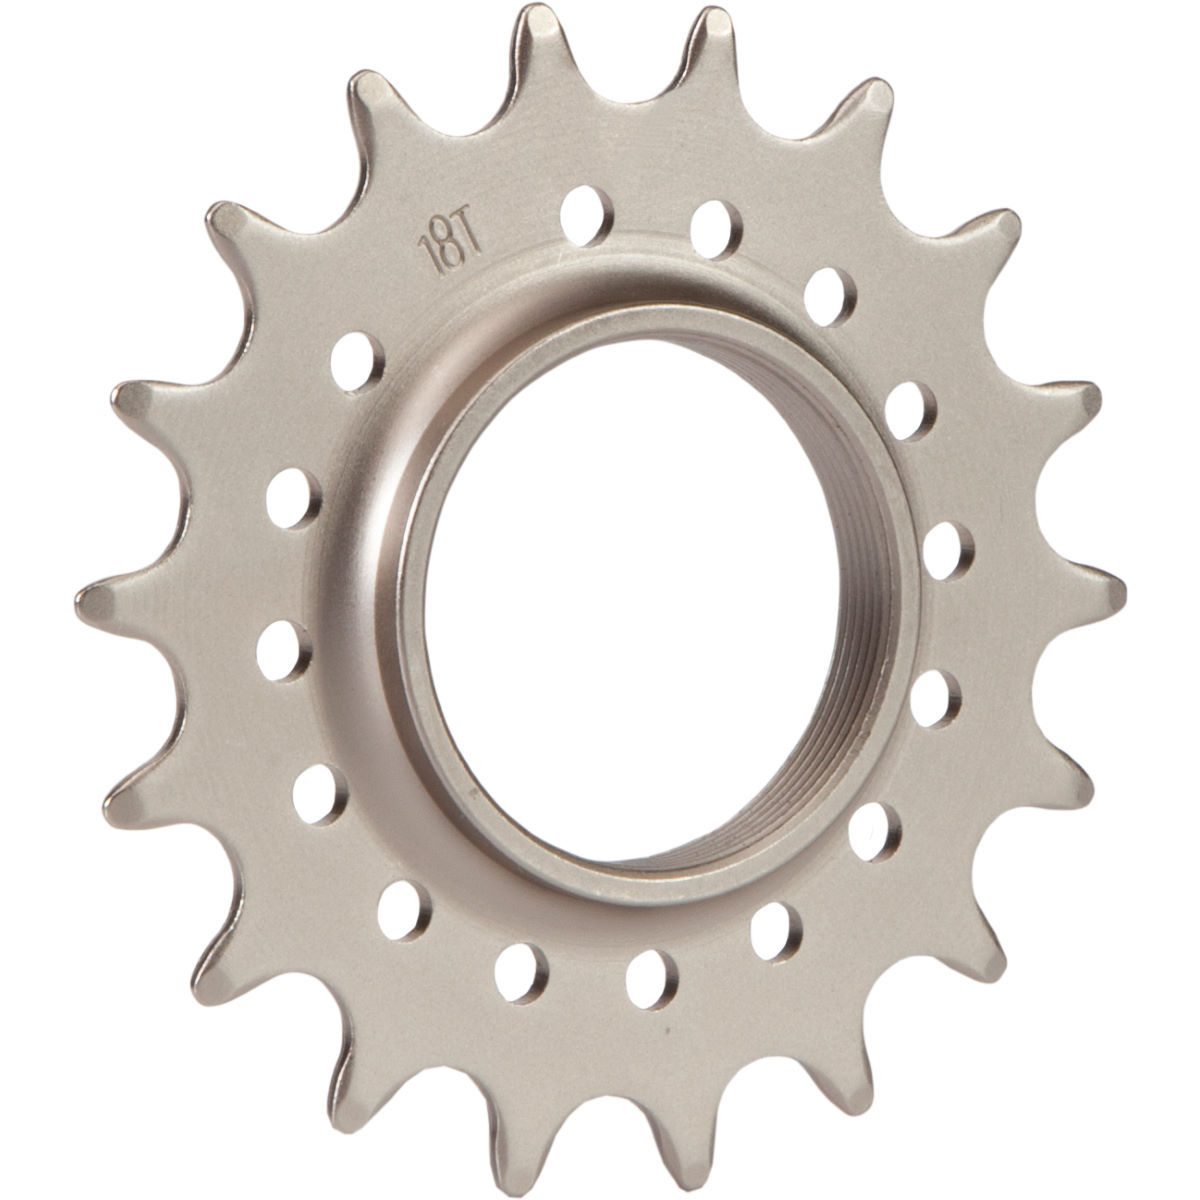 "Brand-X Brand-X 13t - 20t Fixed Gear Track Sprocket 1/8""   Cassettes"